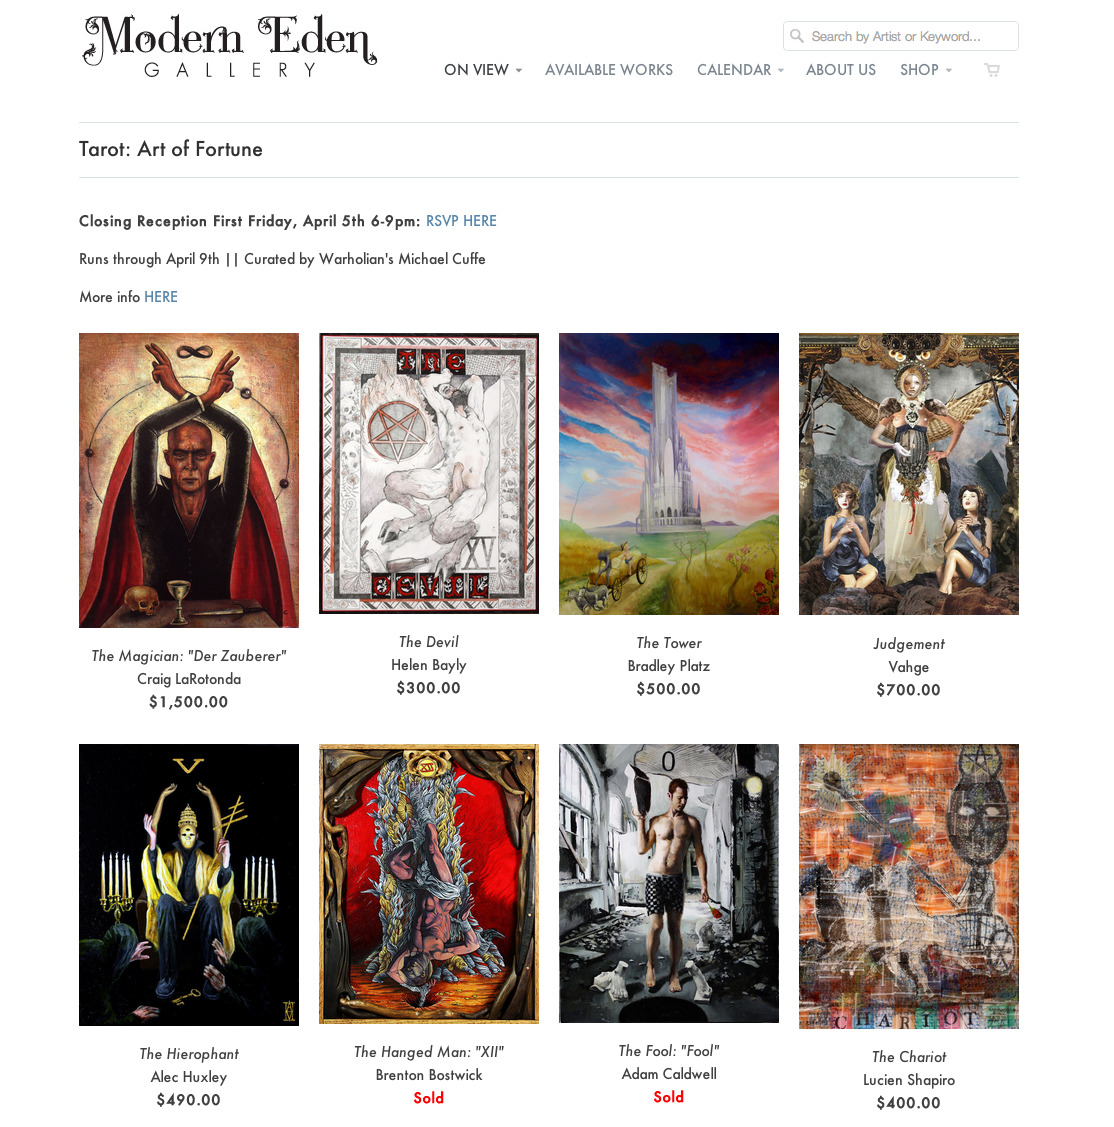 Take a last look at all the work that hasn't sold in Tarot: Art of Fortune curated by Warholian's Michael Cuffe - this is the last chance for the public to be able to purchase this work while the show is still up (last exhibition day today)!View available work here:  http://www.moderneden.com/collections/tarot Or swing by Modern Eden Gallery before 6pm today to see the work in person!